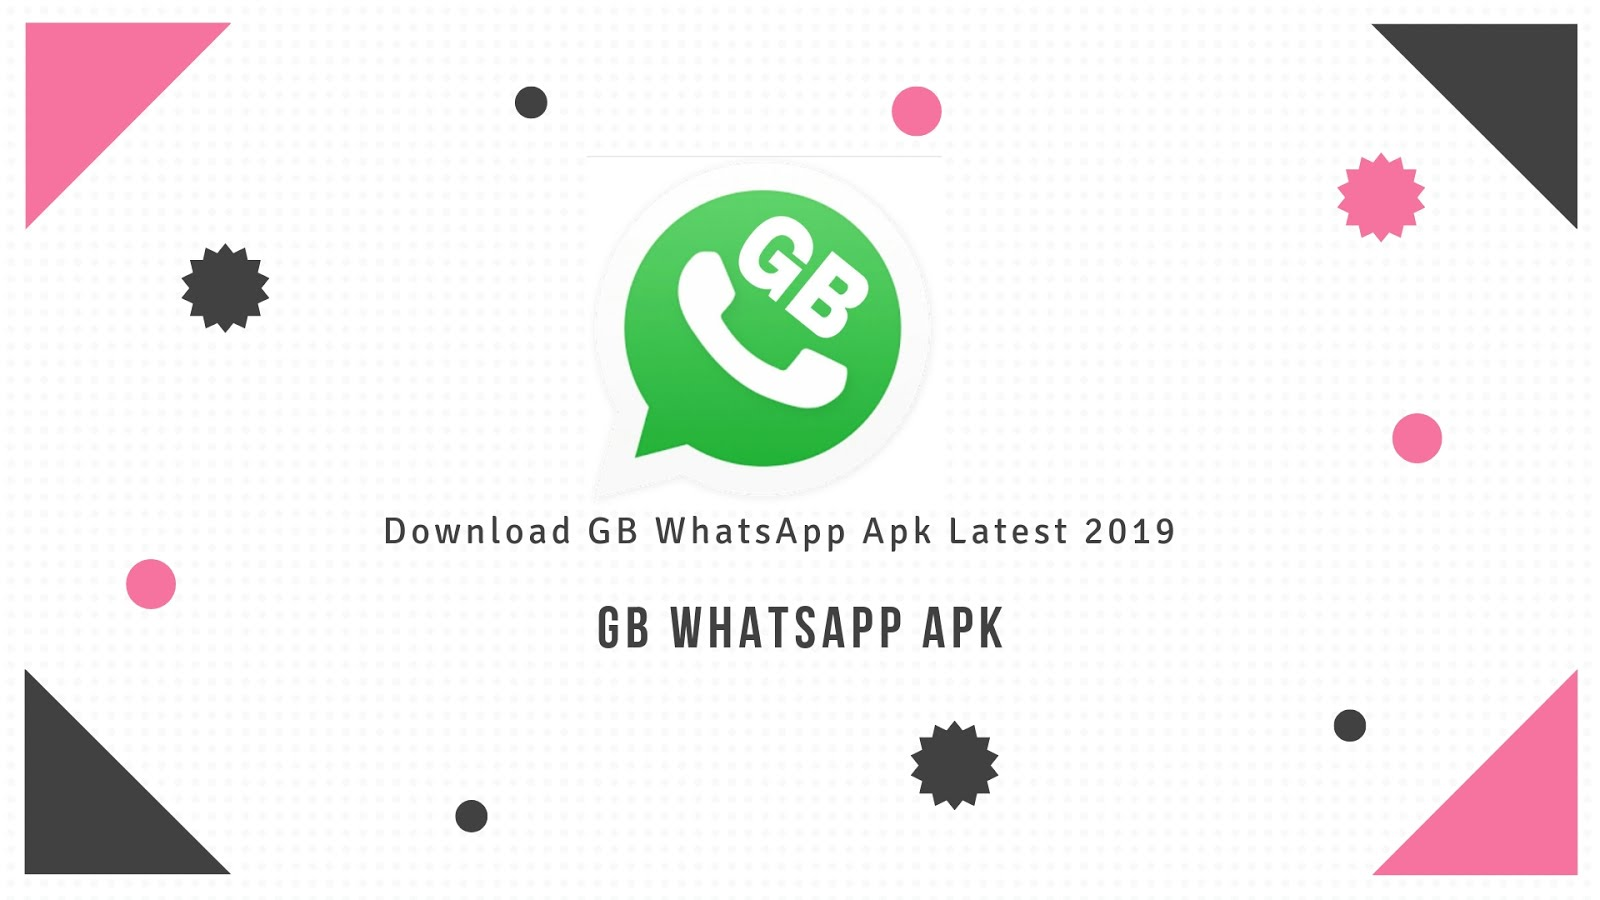 Download and install GBWhatsApp for Android